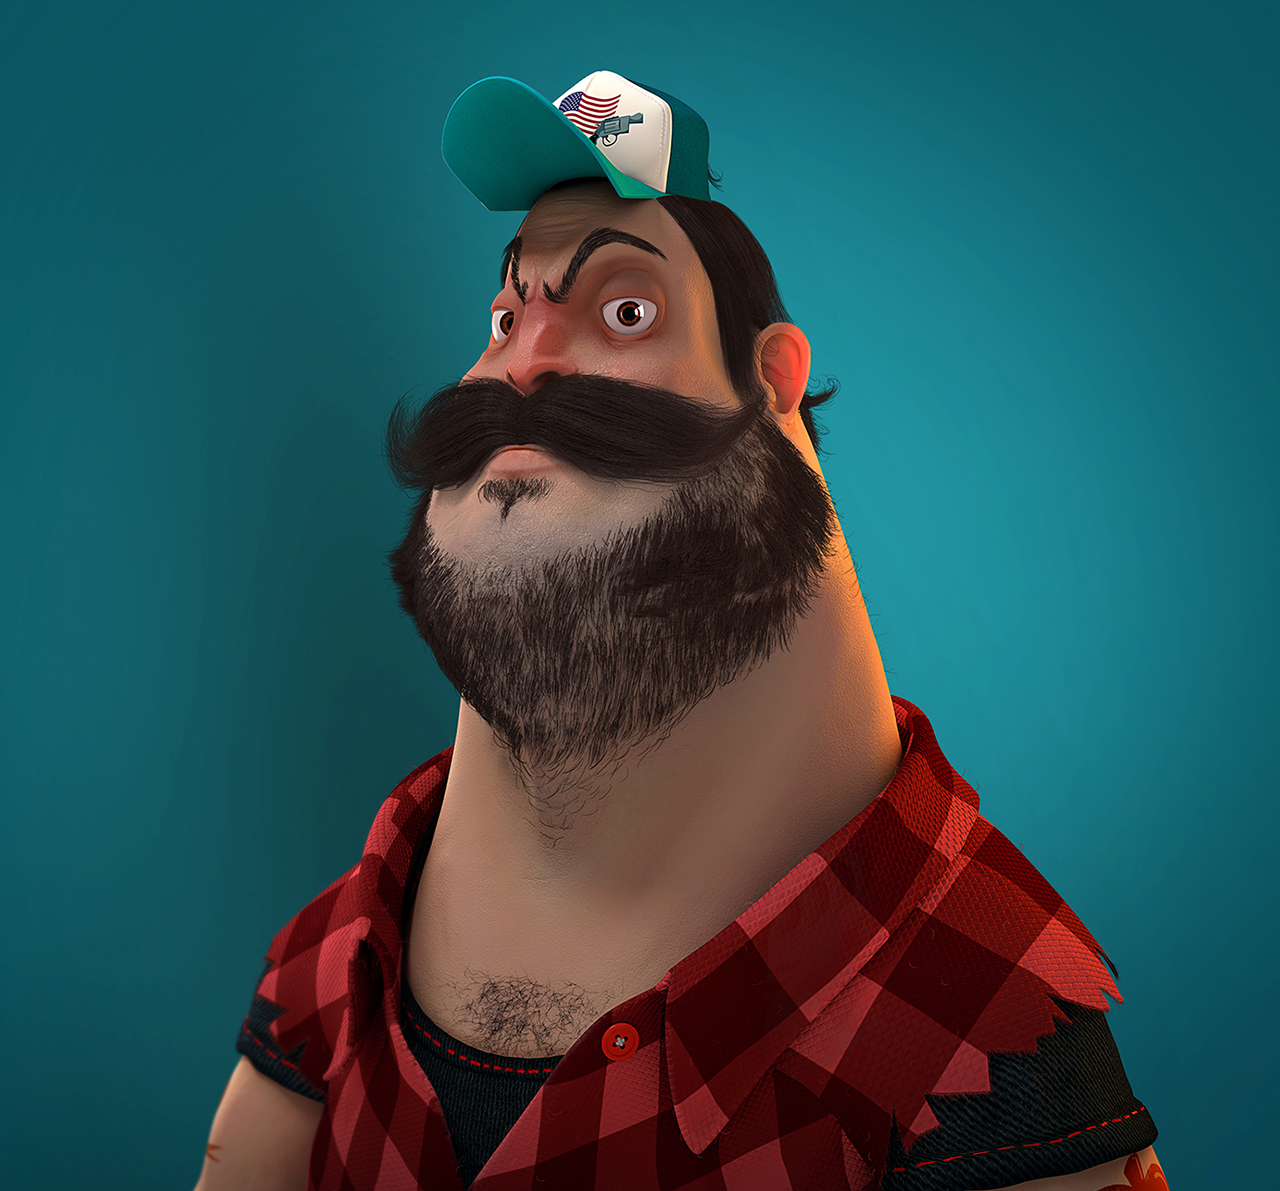 Computer Generated Image of a lumberjack caricature